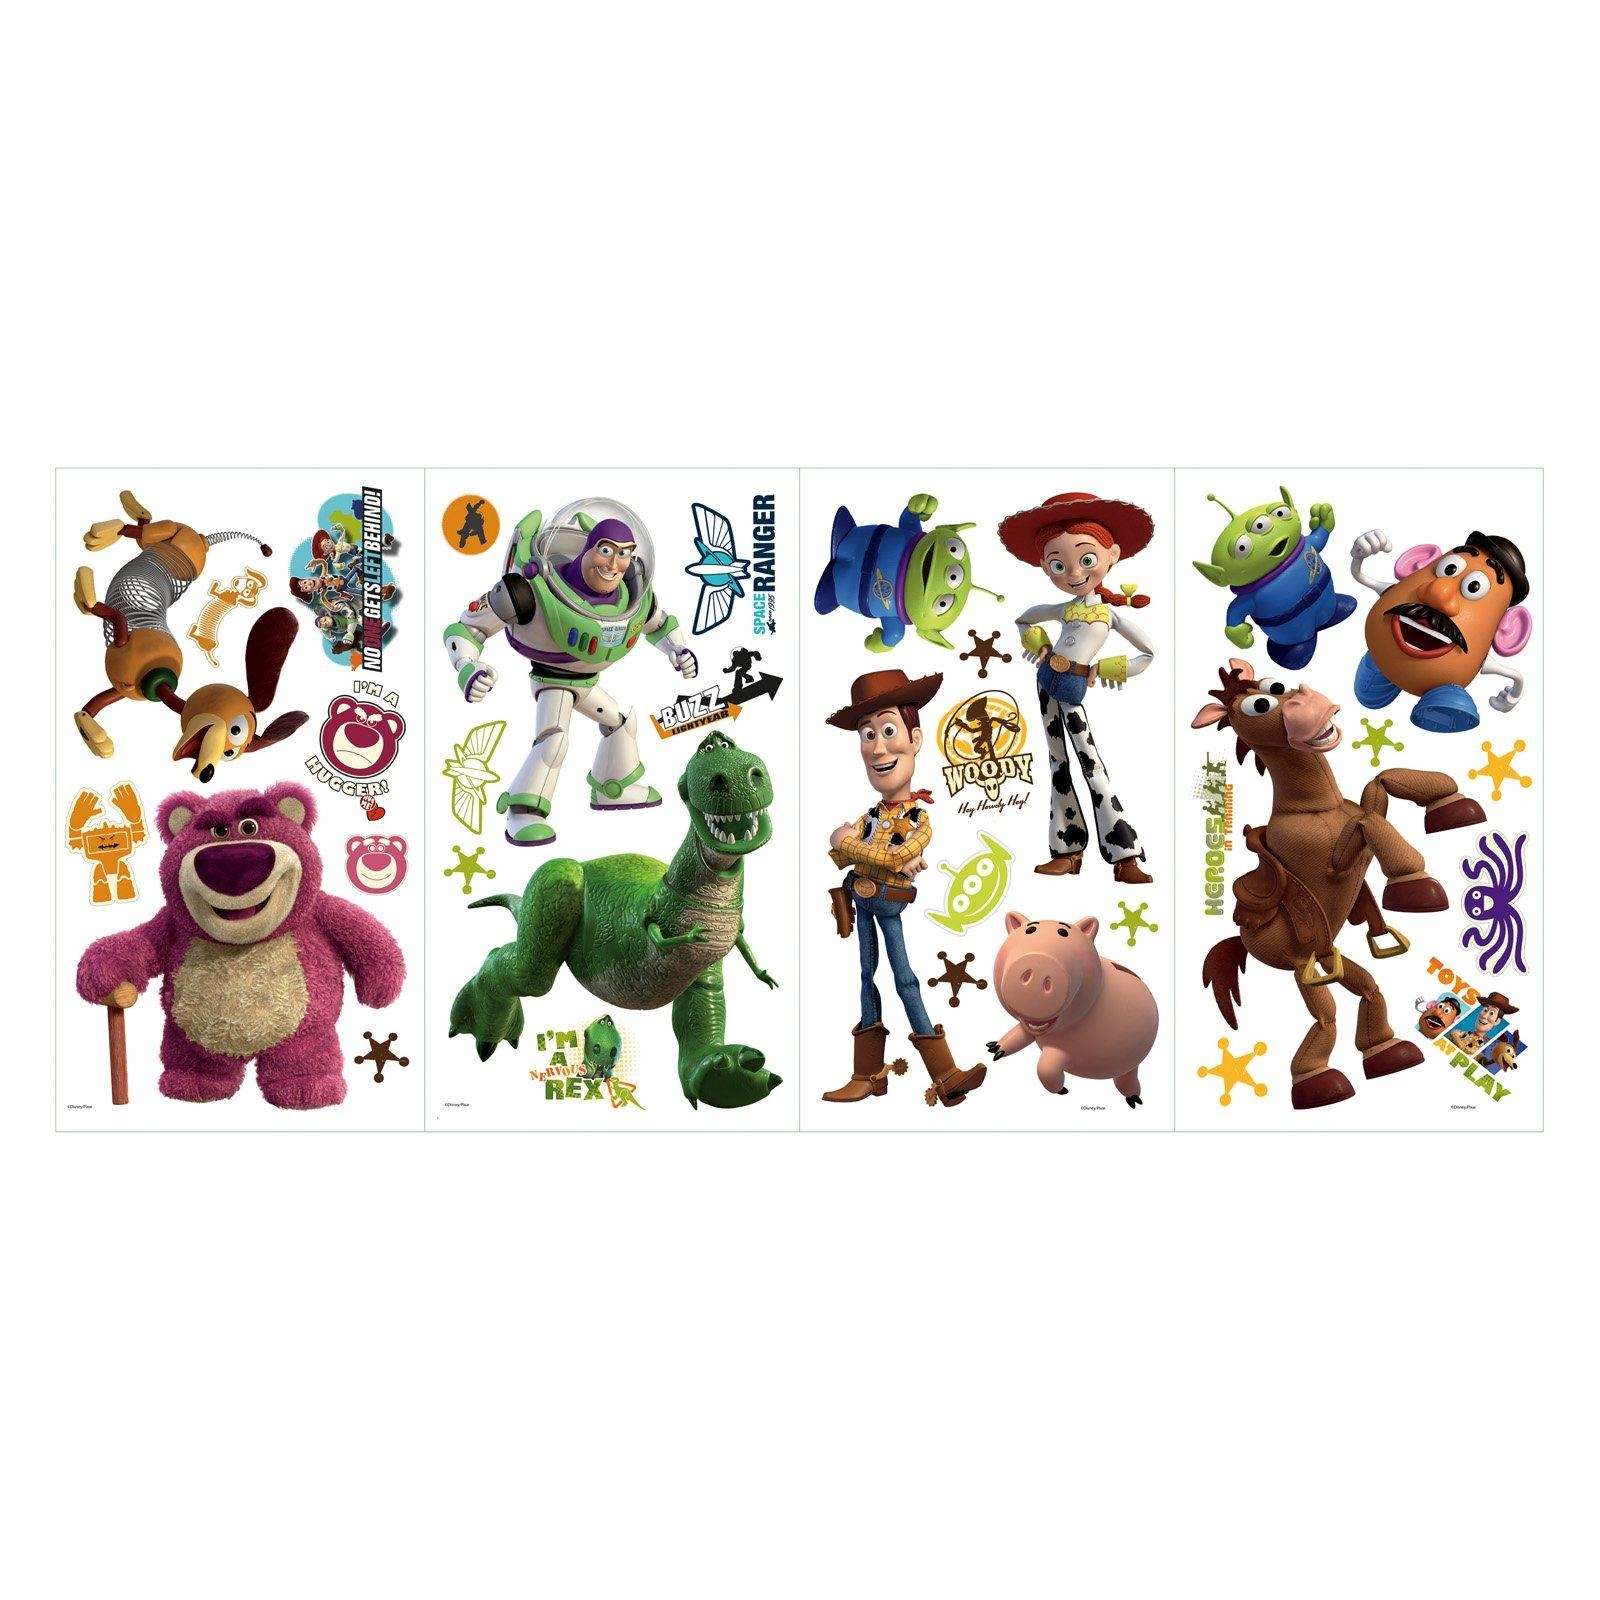 Roommates Disney Pixar Toy Story 3 Peel & Stick Wall Decals - Glow throughout Toy Story Wall Stickers